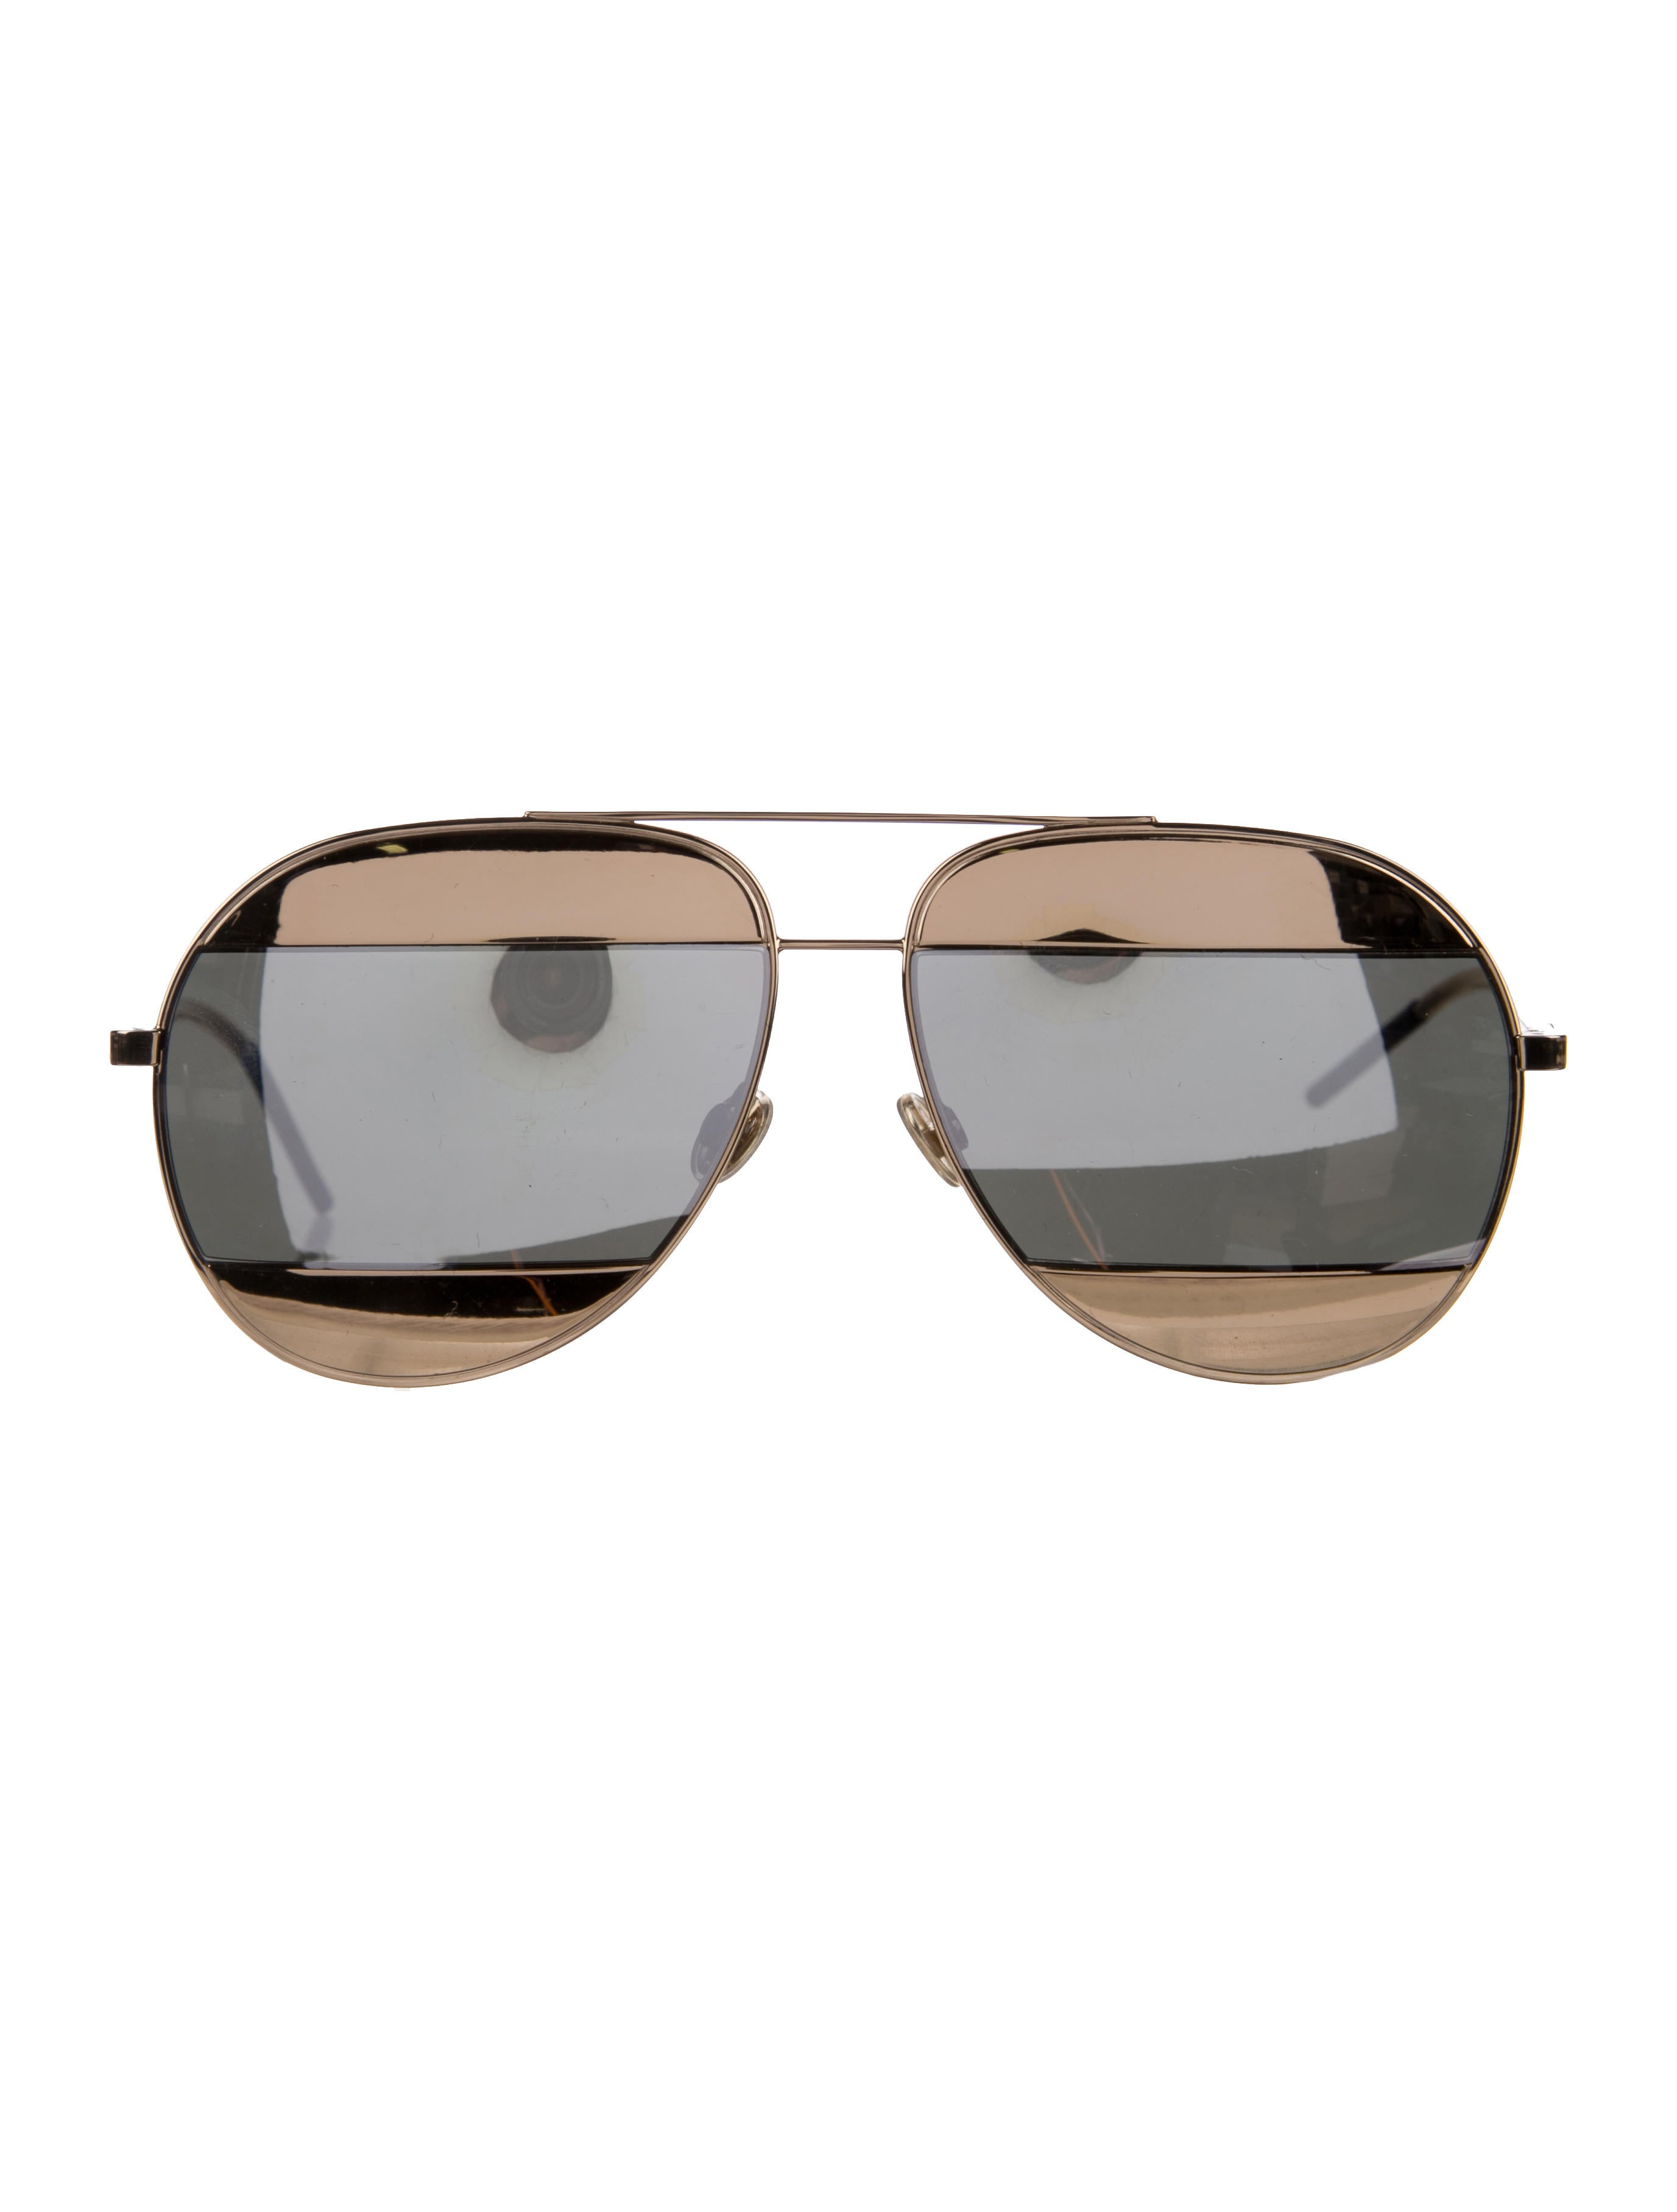 d104fcde55b0 Christian Dior Split 1 Mirrored Sunglasses - Accessories - CHR65419 ...